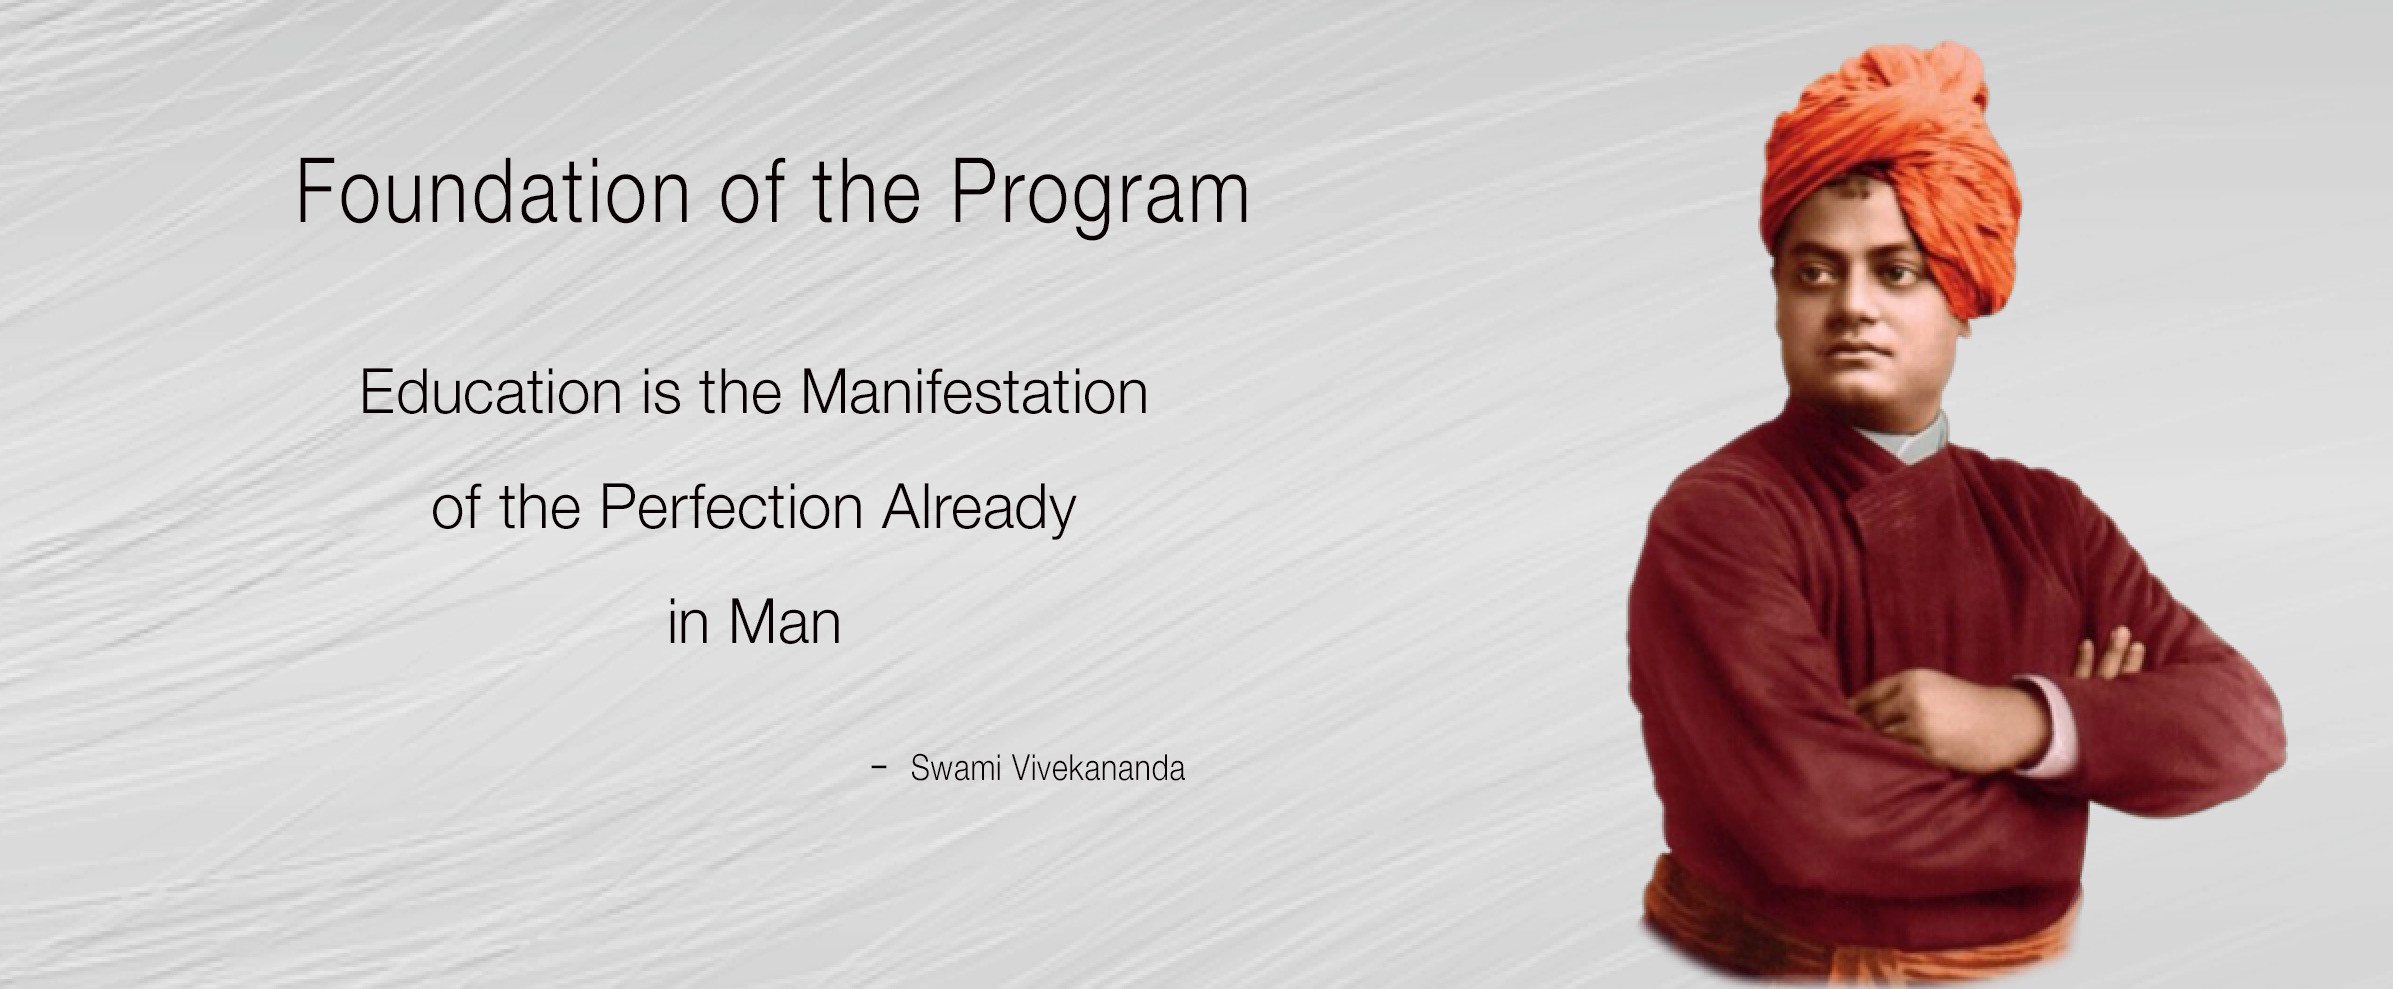 Foundation of the Program: Education is the manifestation of perfection already in man